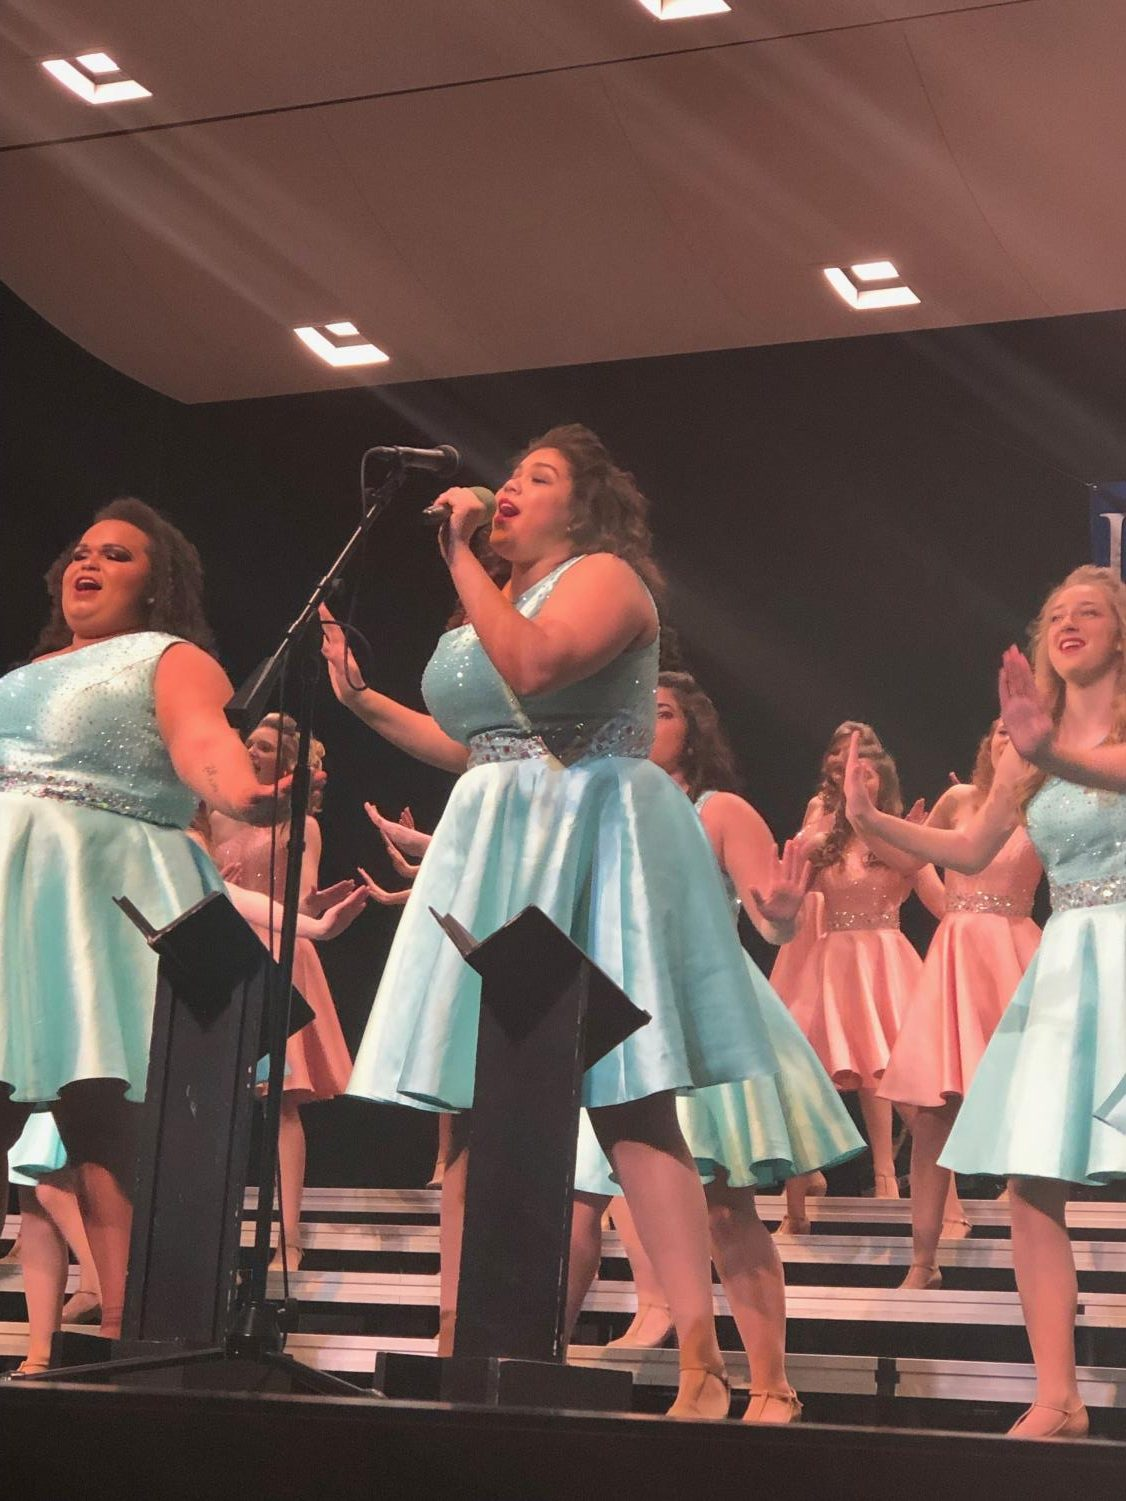 East High's Elegance first soloist Celeste Hellbusch singing at in the exhibition performance at Spartan Spectacular on Saturday, January 26.